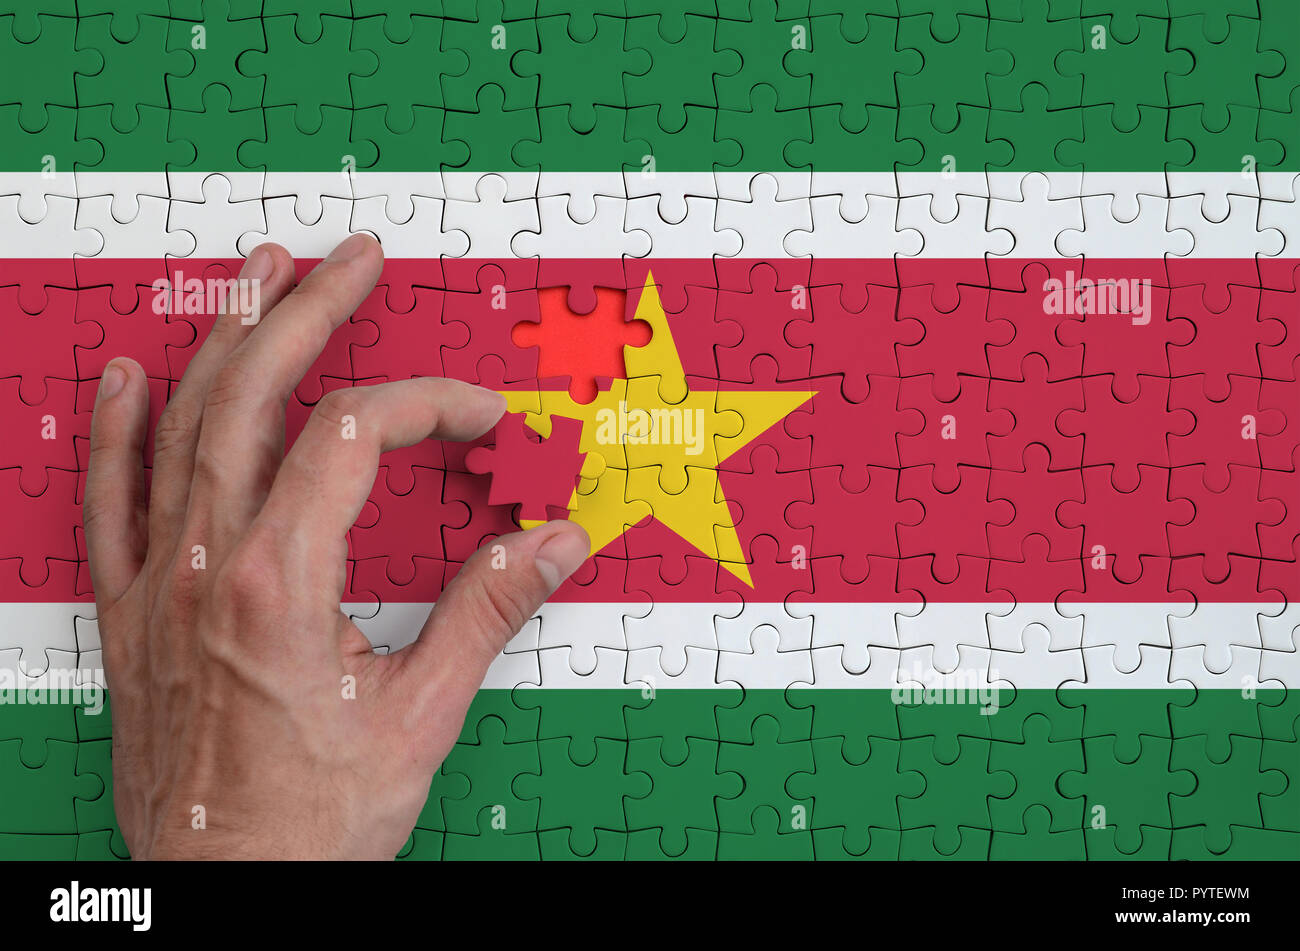 Suriname flag  is depicted on a puzzle, which the man's hand completes to fold. - Stock Image